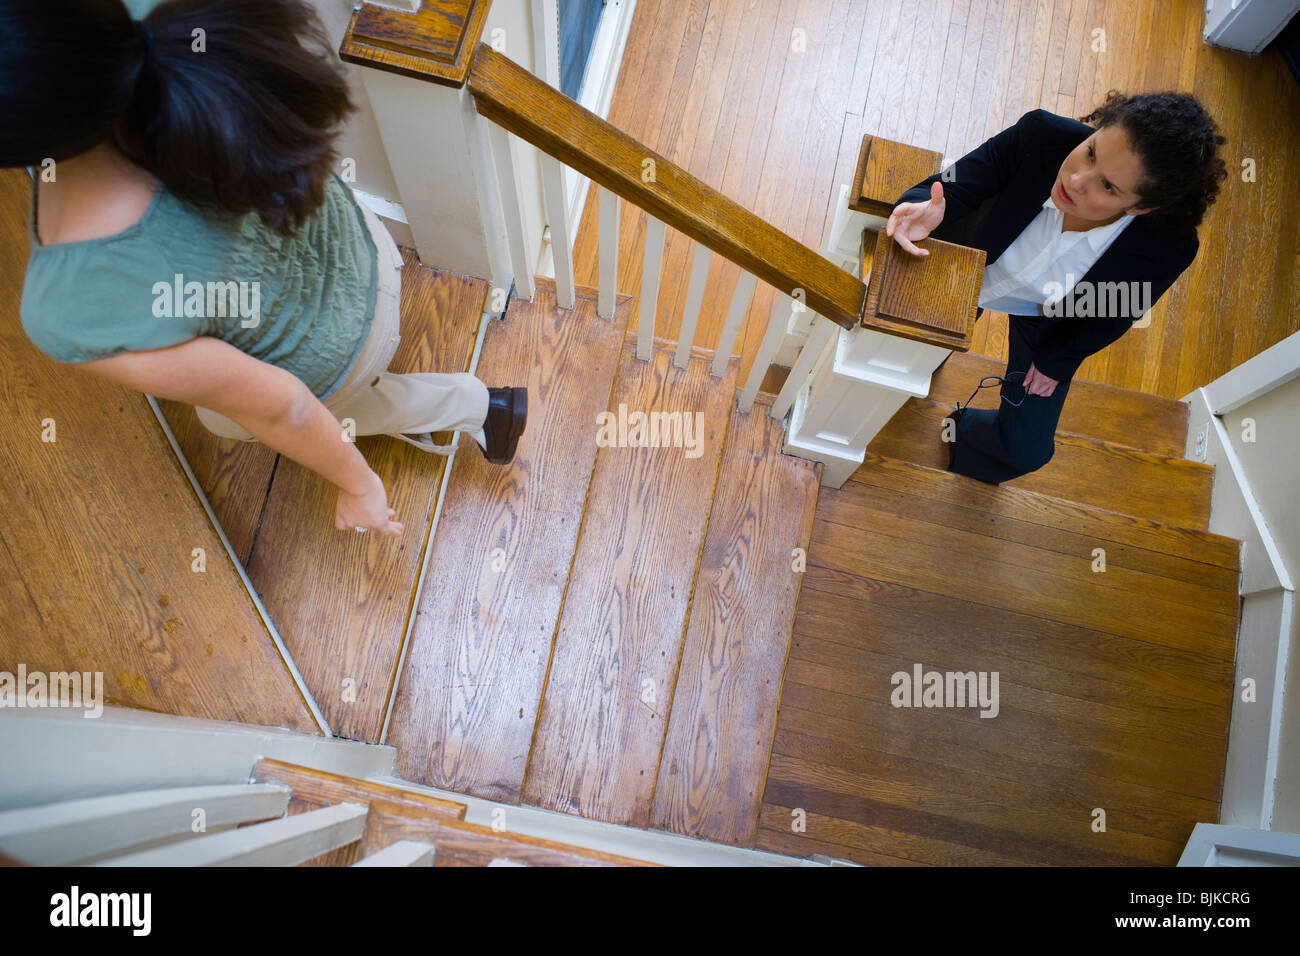 Two women arguing on staircase - Stock Image